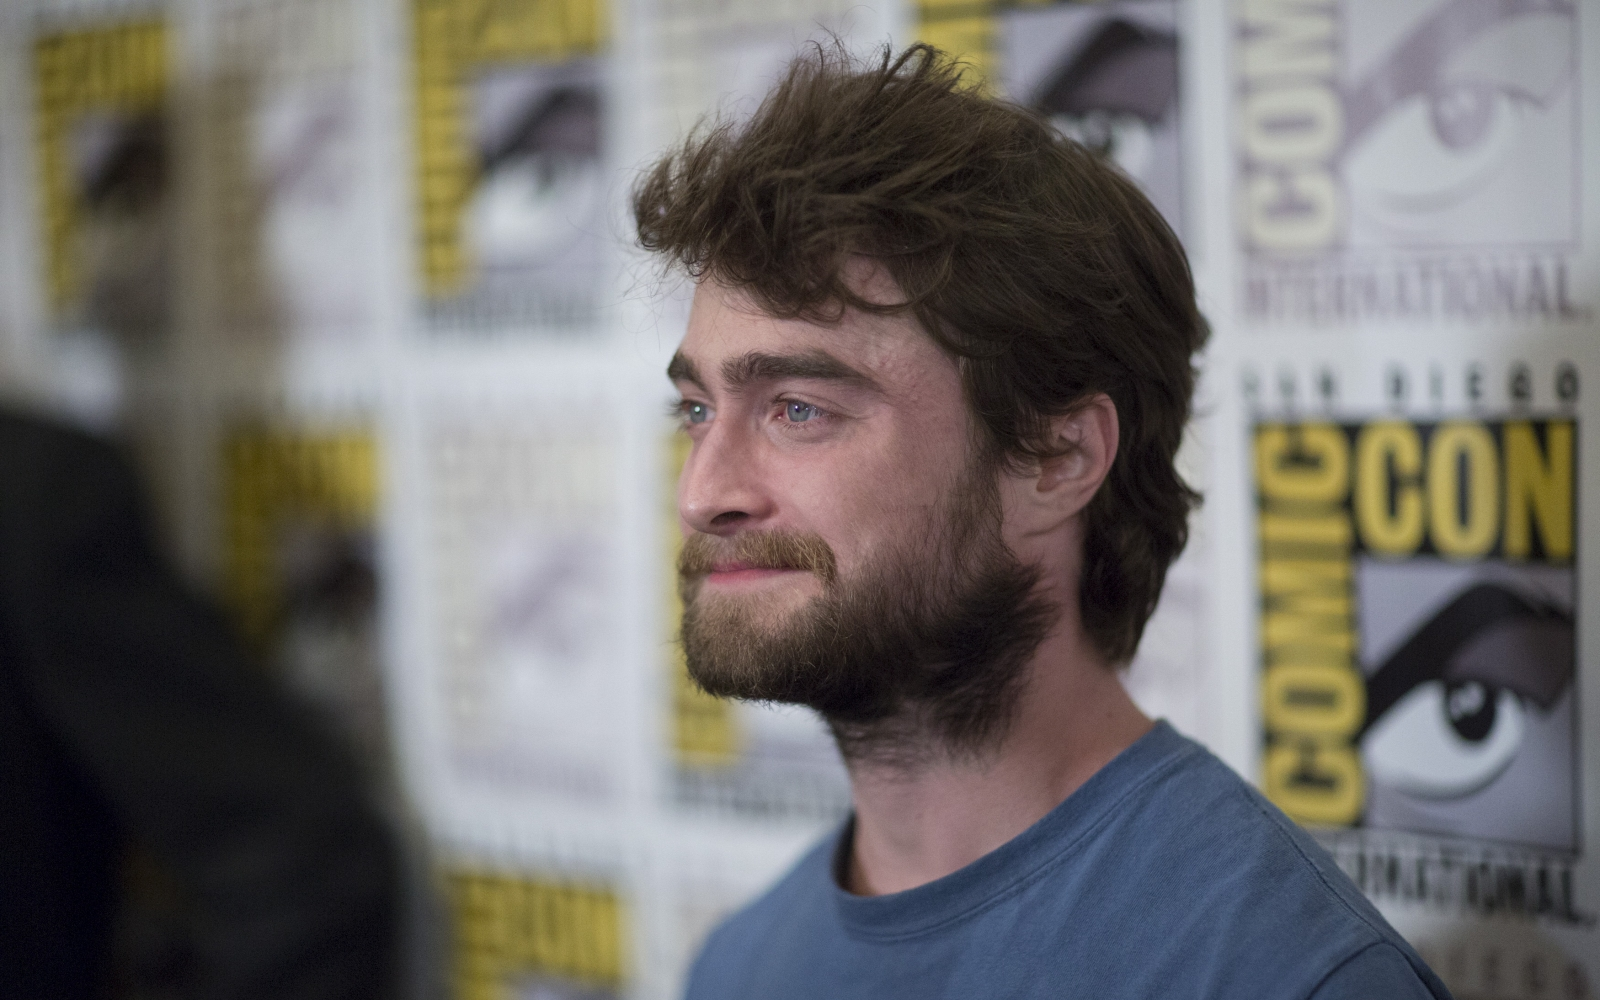 Daniel Radcliffe at Comic Con 2015